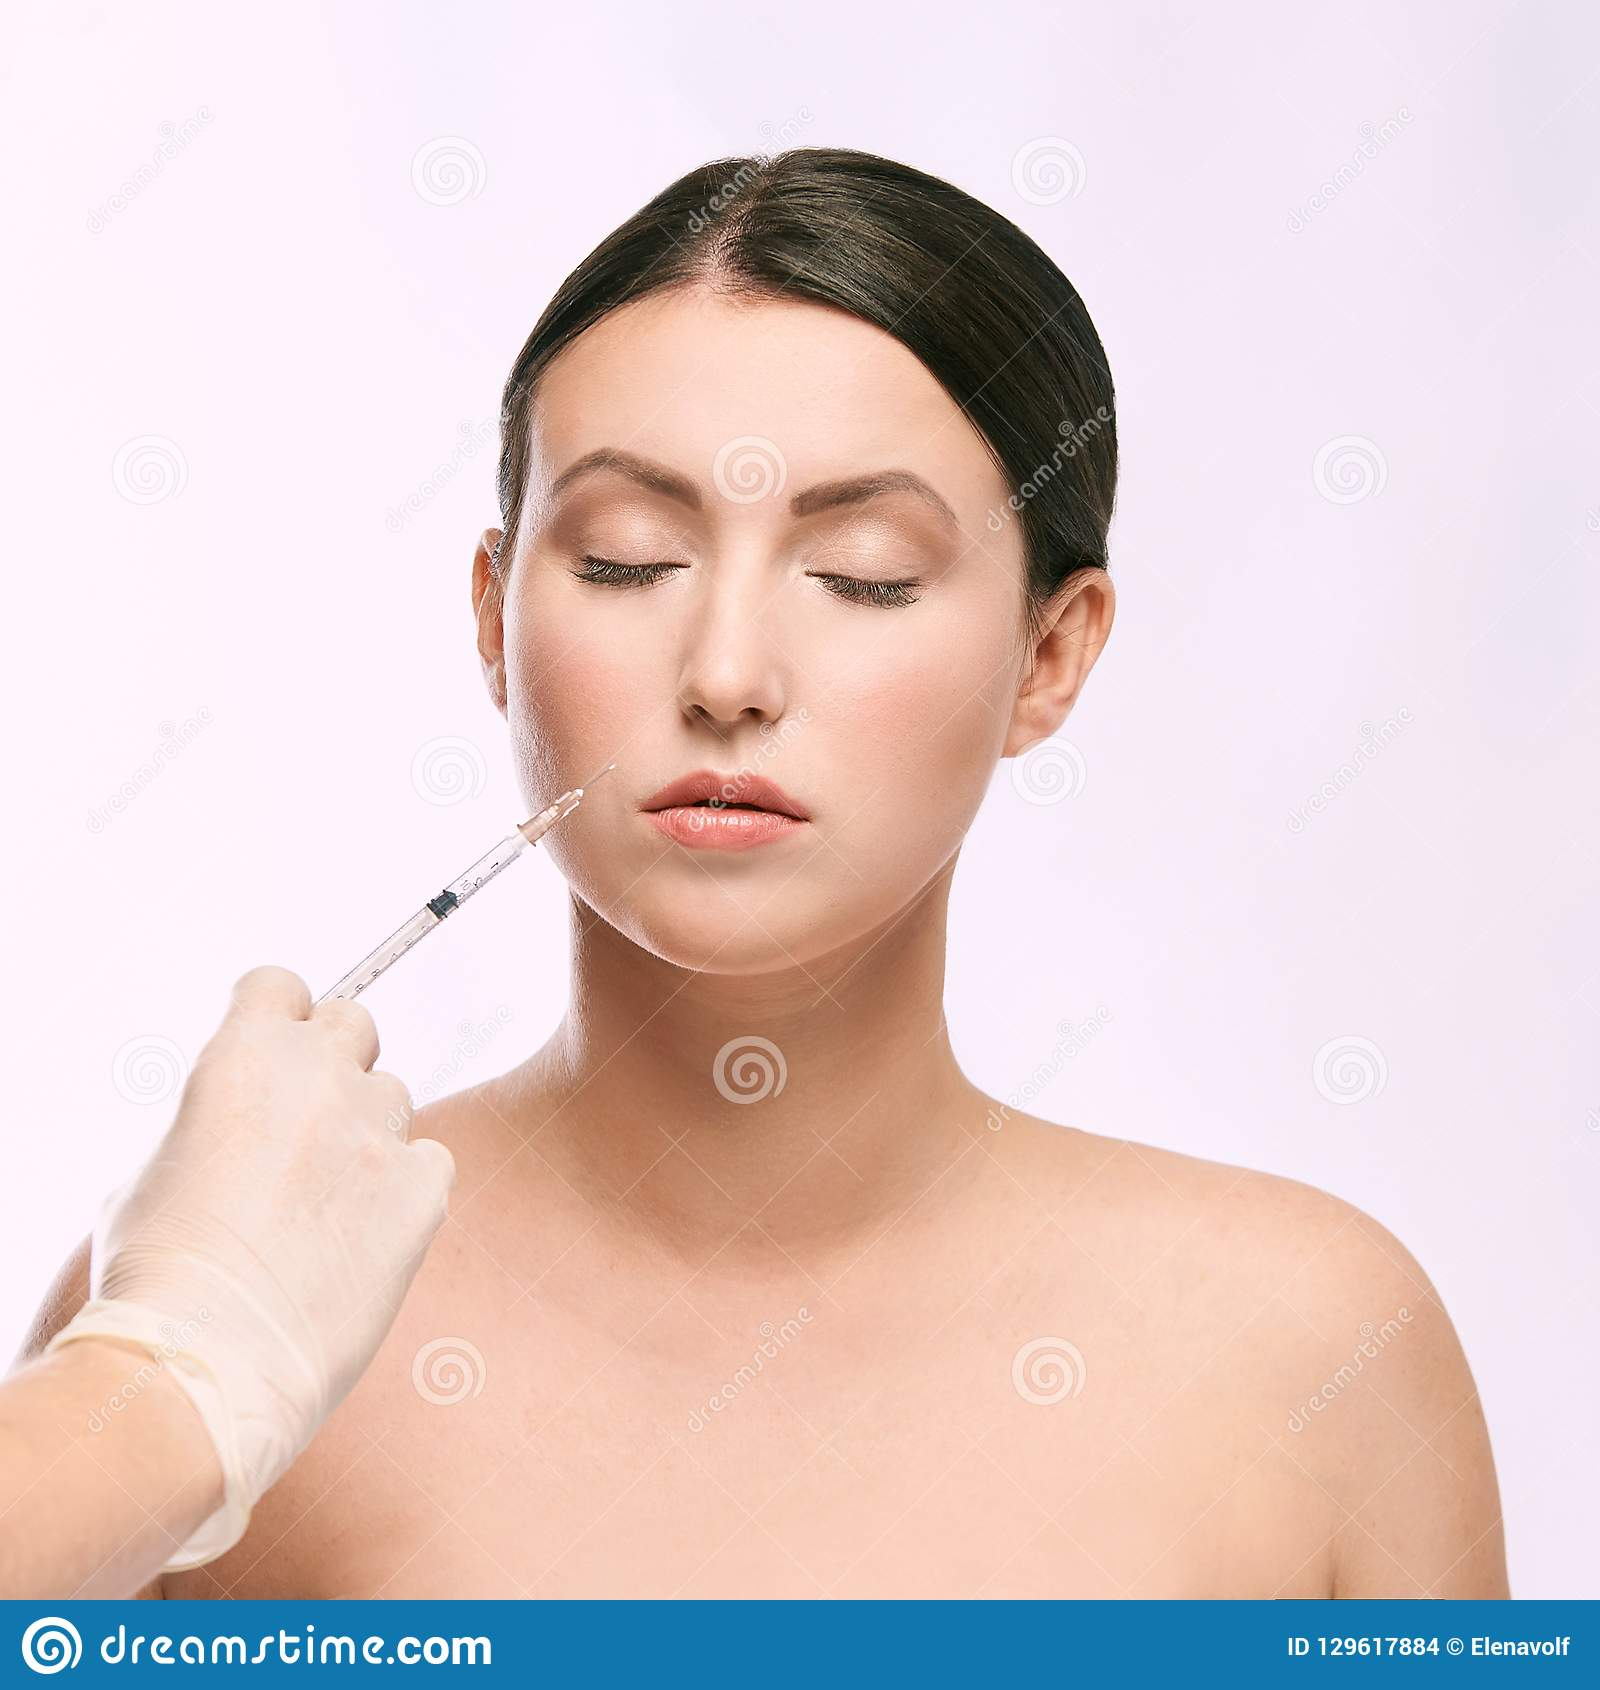 Woman Face Injection  Salon Cosmetology Procedure  Skin